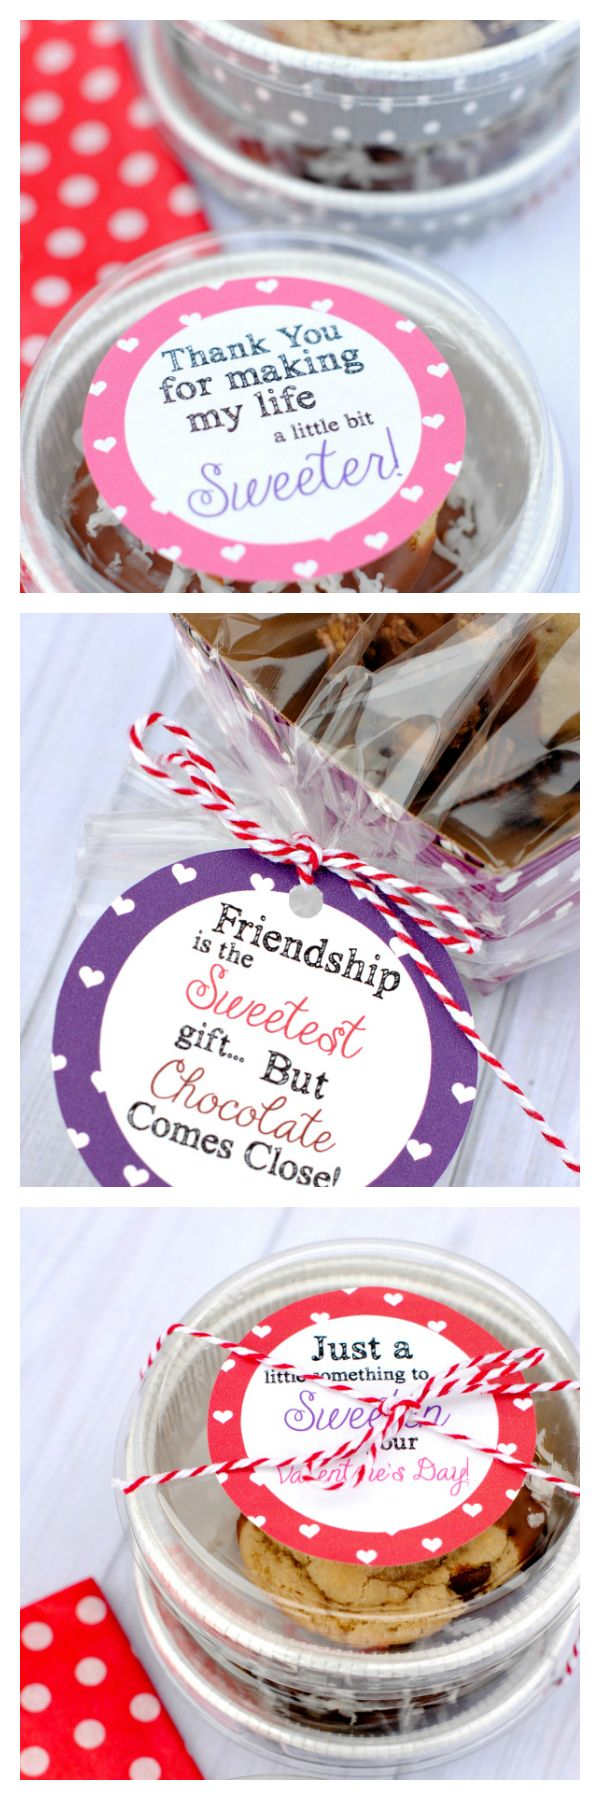 Cute Gift Tags to package Valentine's Treats for friends